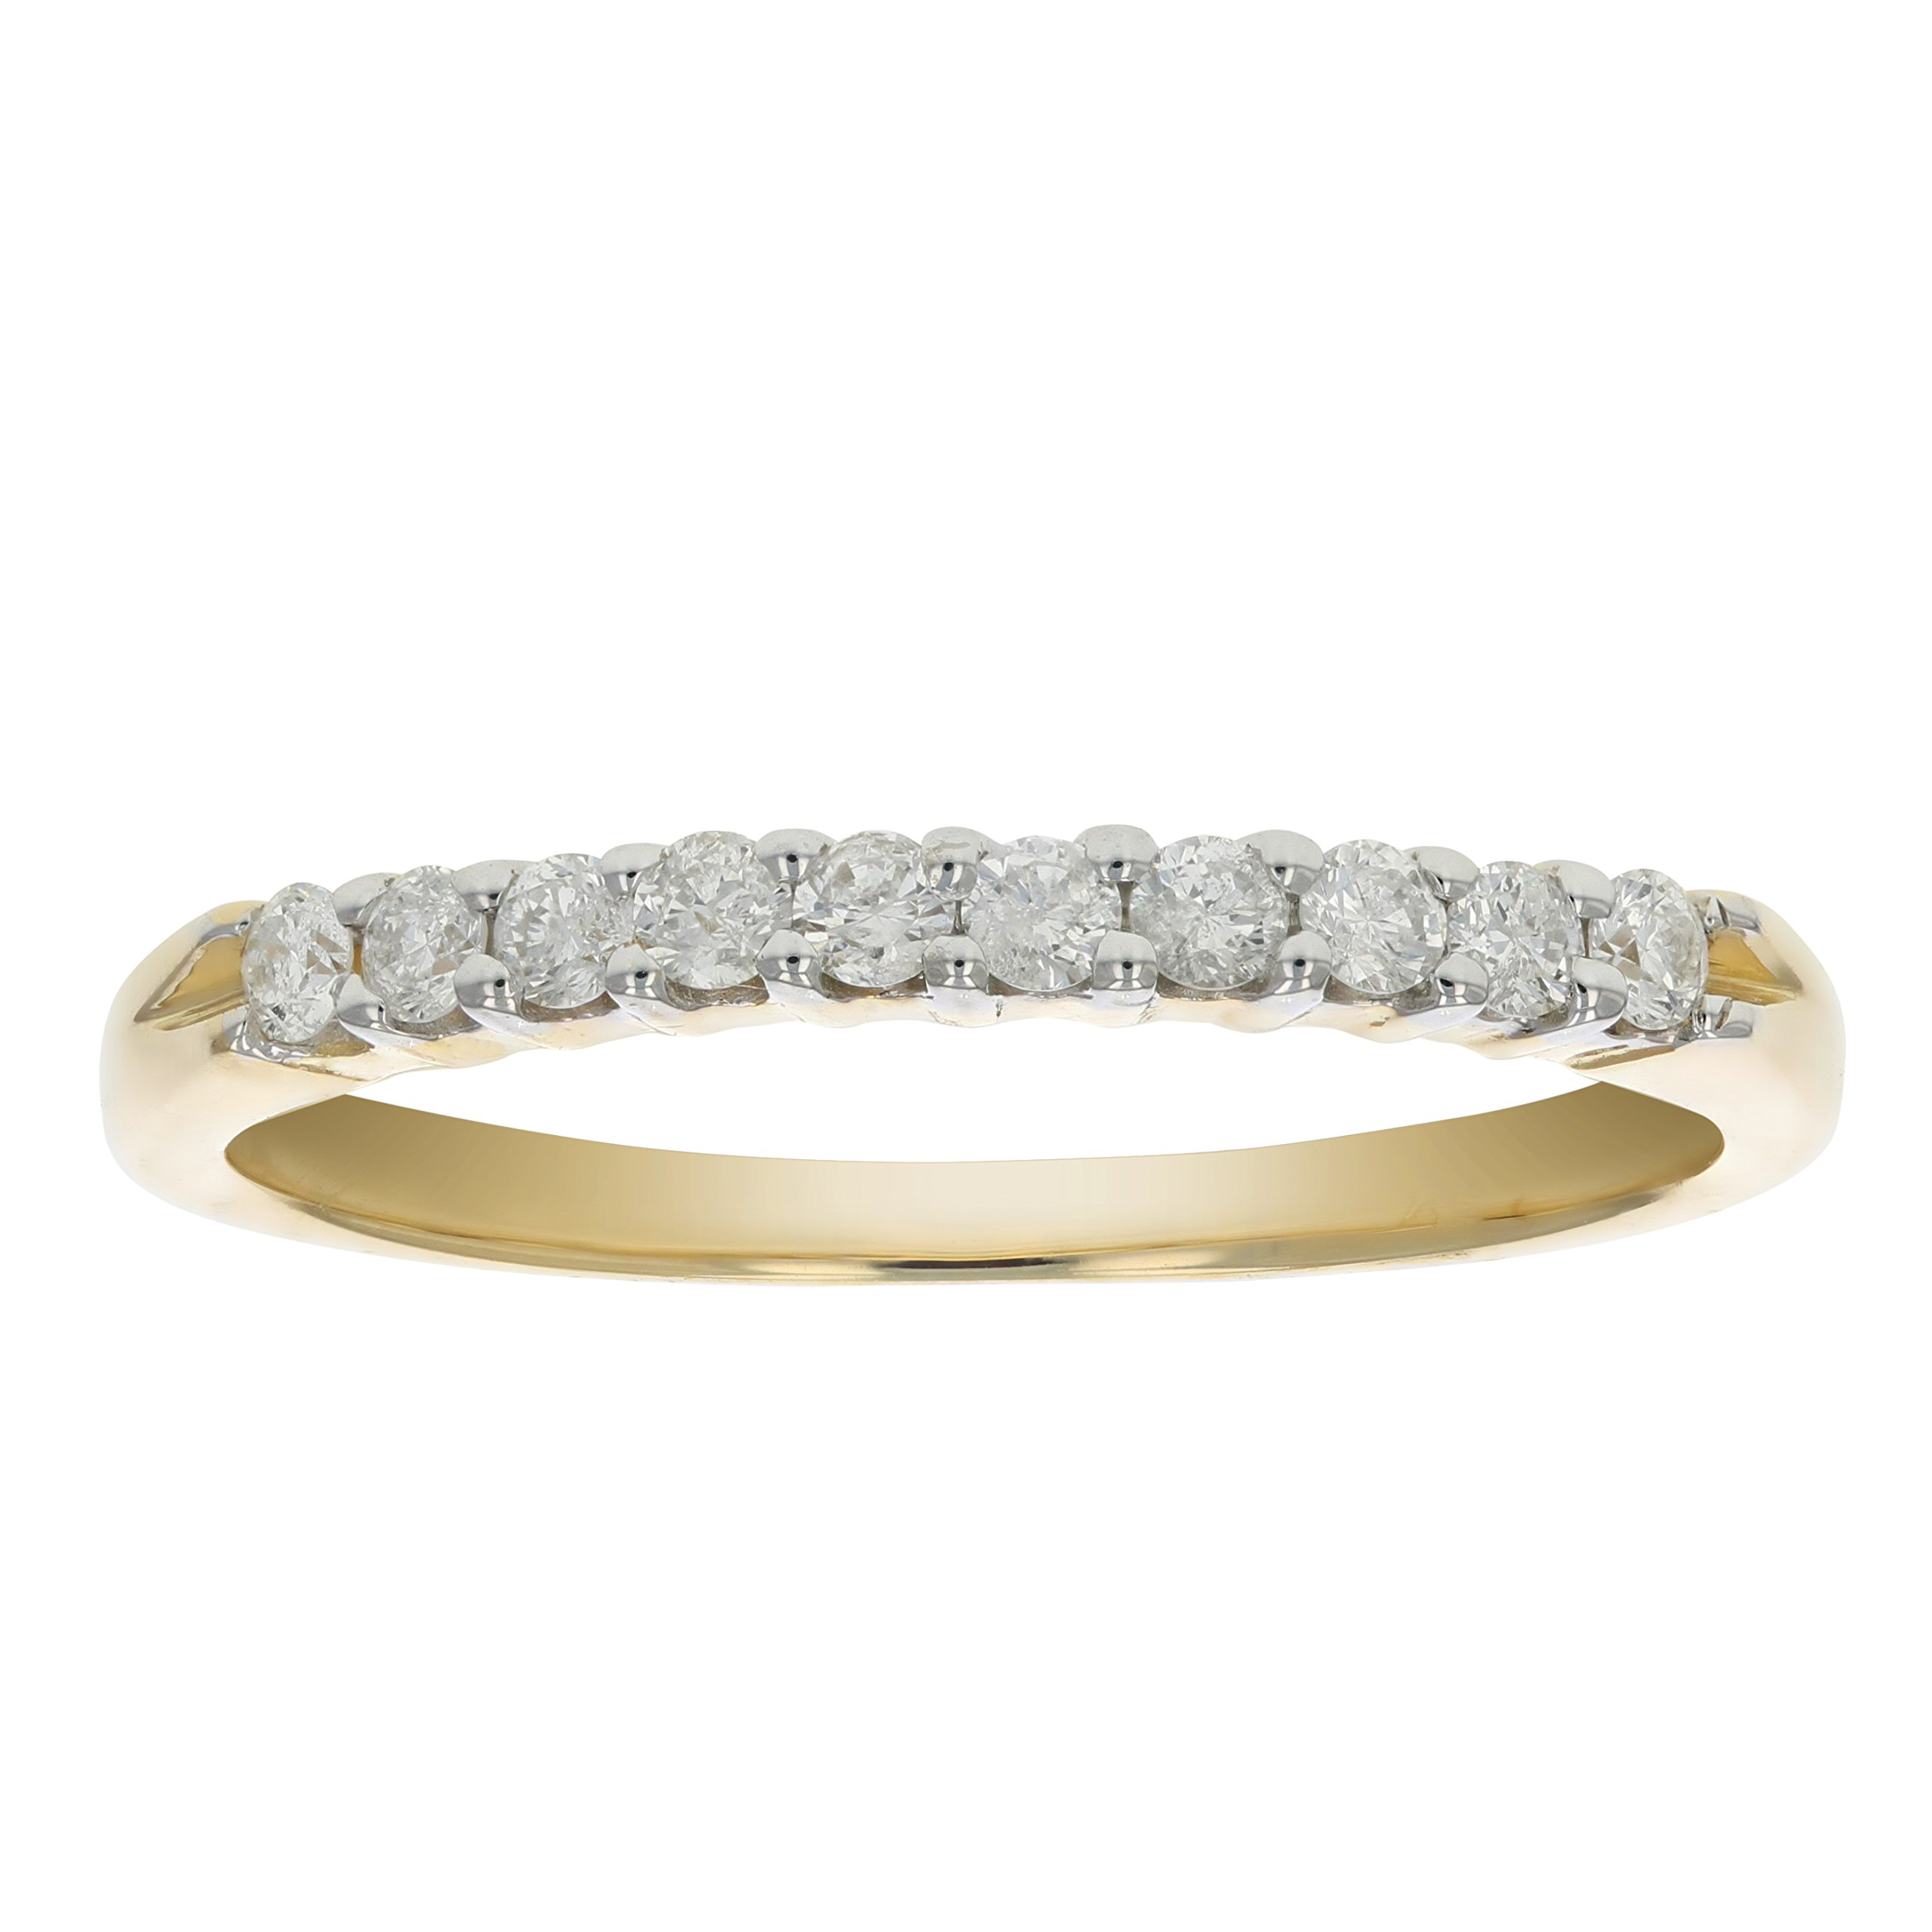 AGS Certified I1-I2 1/4 ctw Diamond Wedding Band 14K Yellow Gold Size 7